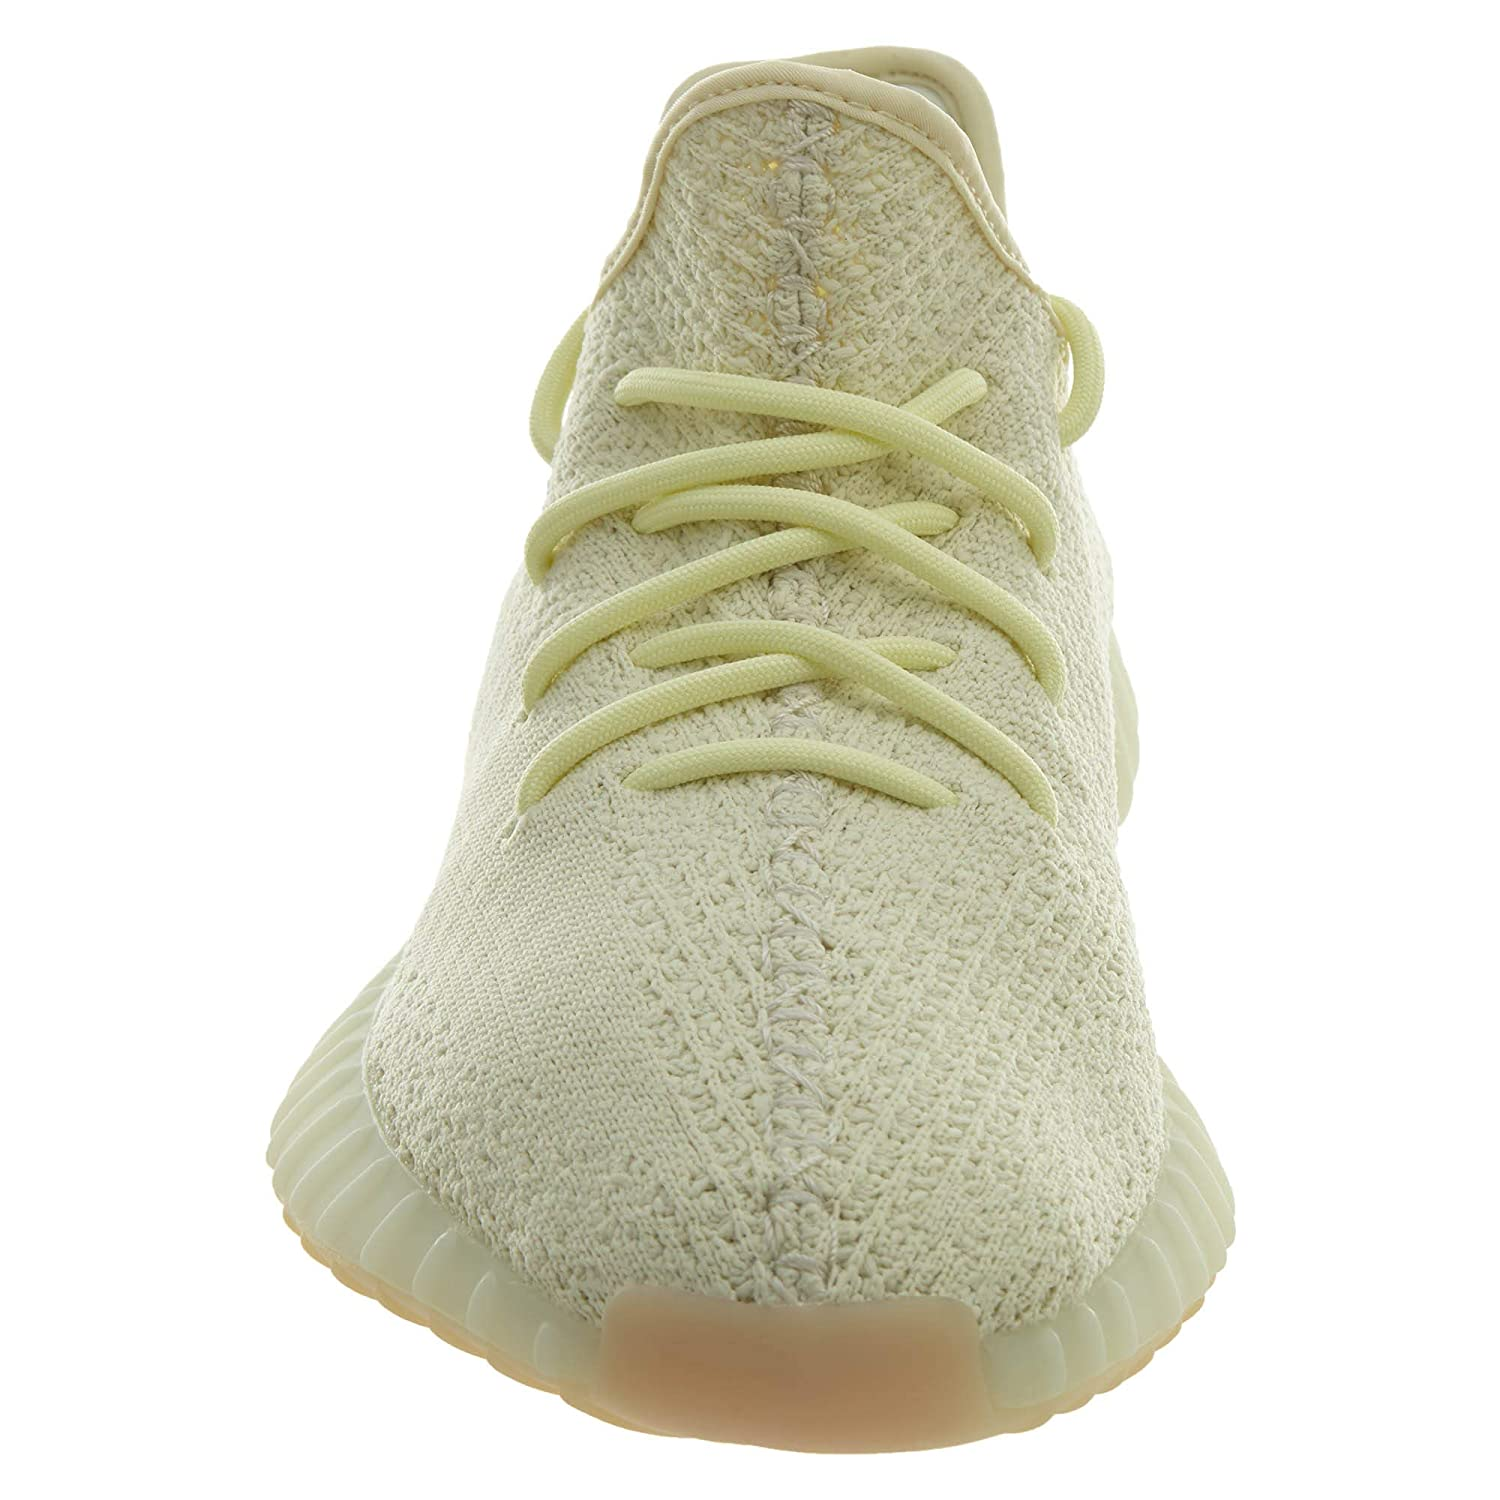 00e8c946b ... sweden amazon adidas yeezy boost 350 v2 fashion sneakers c3088 04f1c